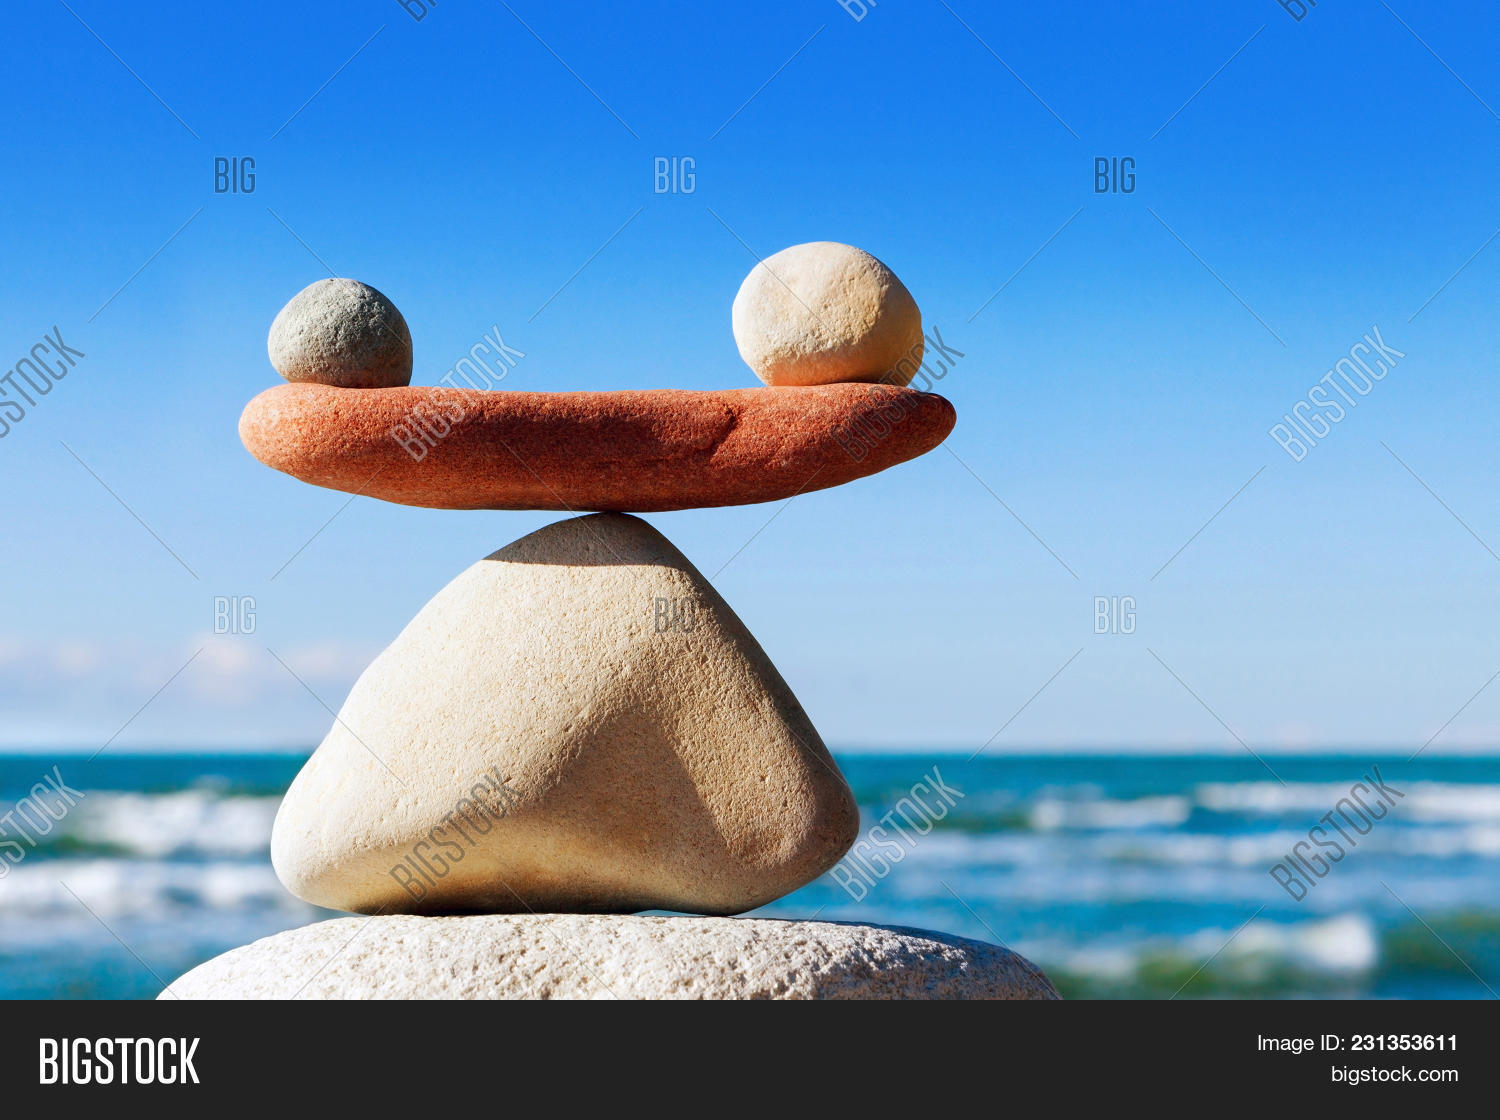 balance,beach,blue,calm,coast,compare,concept,cons,equality,equilibration,equilibrium,equipoise,equivalence,exactness,harmony,instability,life,meditation,nature,ocean,parity,pebble,perfect,poise,precision,proportion,pros,relaxation,rock,sameness,scales,sea,serenity,simplicity,sky,spa,stability,stable,stack,steadfast,steadiness,steady,stones,success,summer,sustained,weigh,work,zen